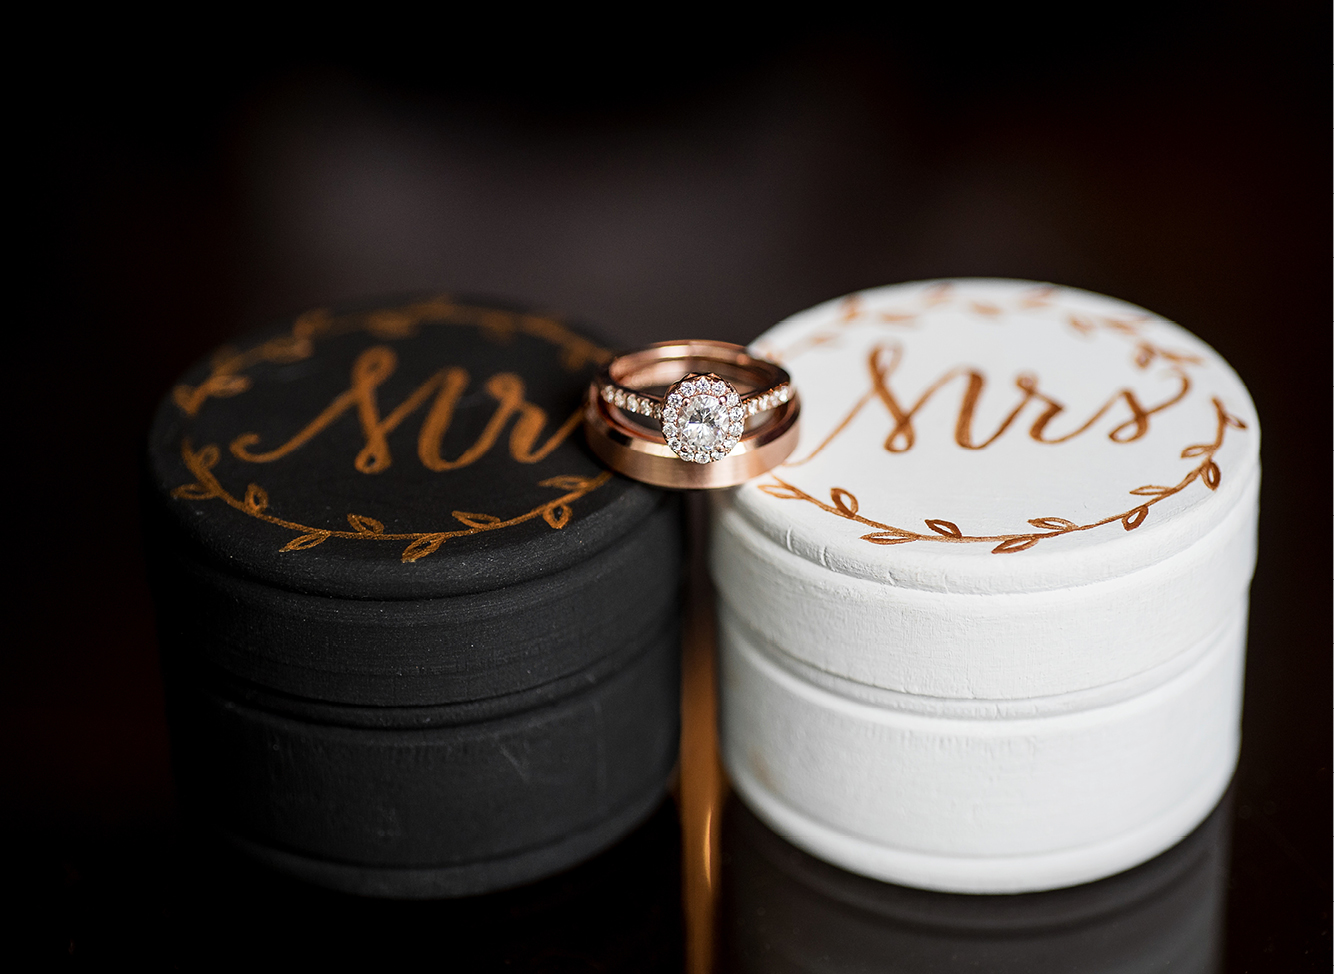 Engagement-Ring-Boxes-Annie-Ned-photography